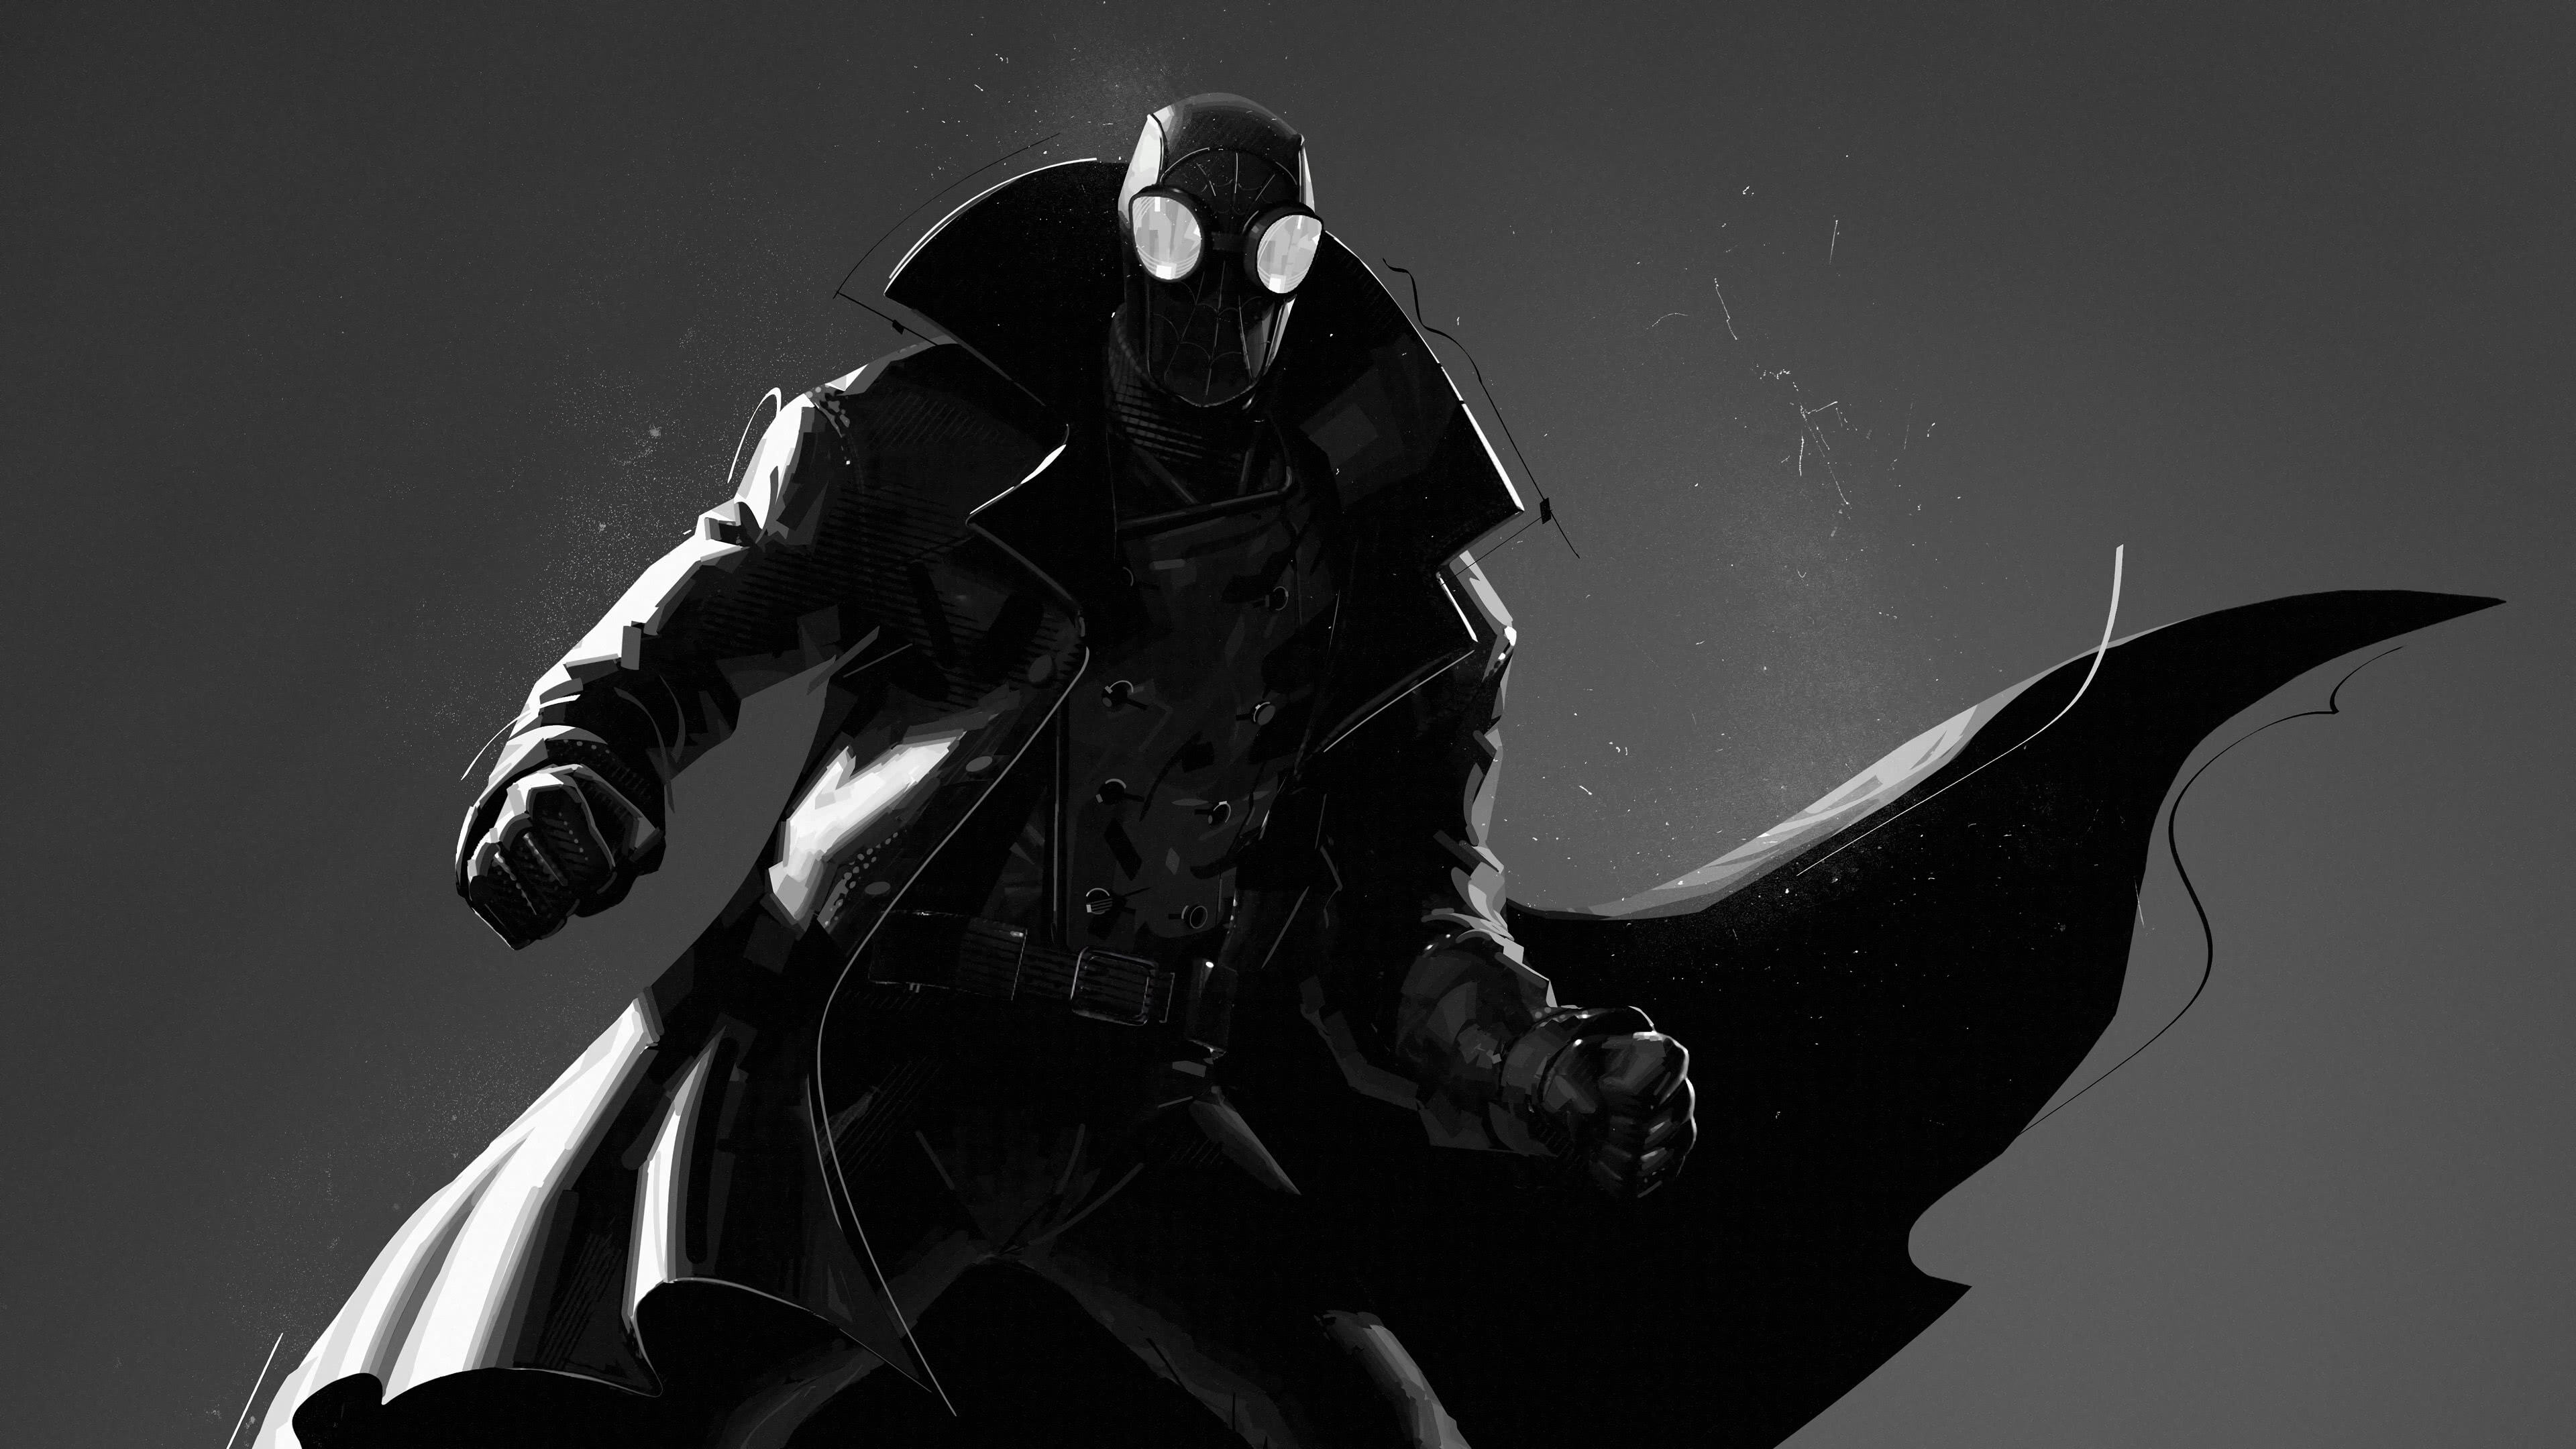 spiderman into the spider verse spiderman noir uhd 4k wallpaper